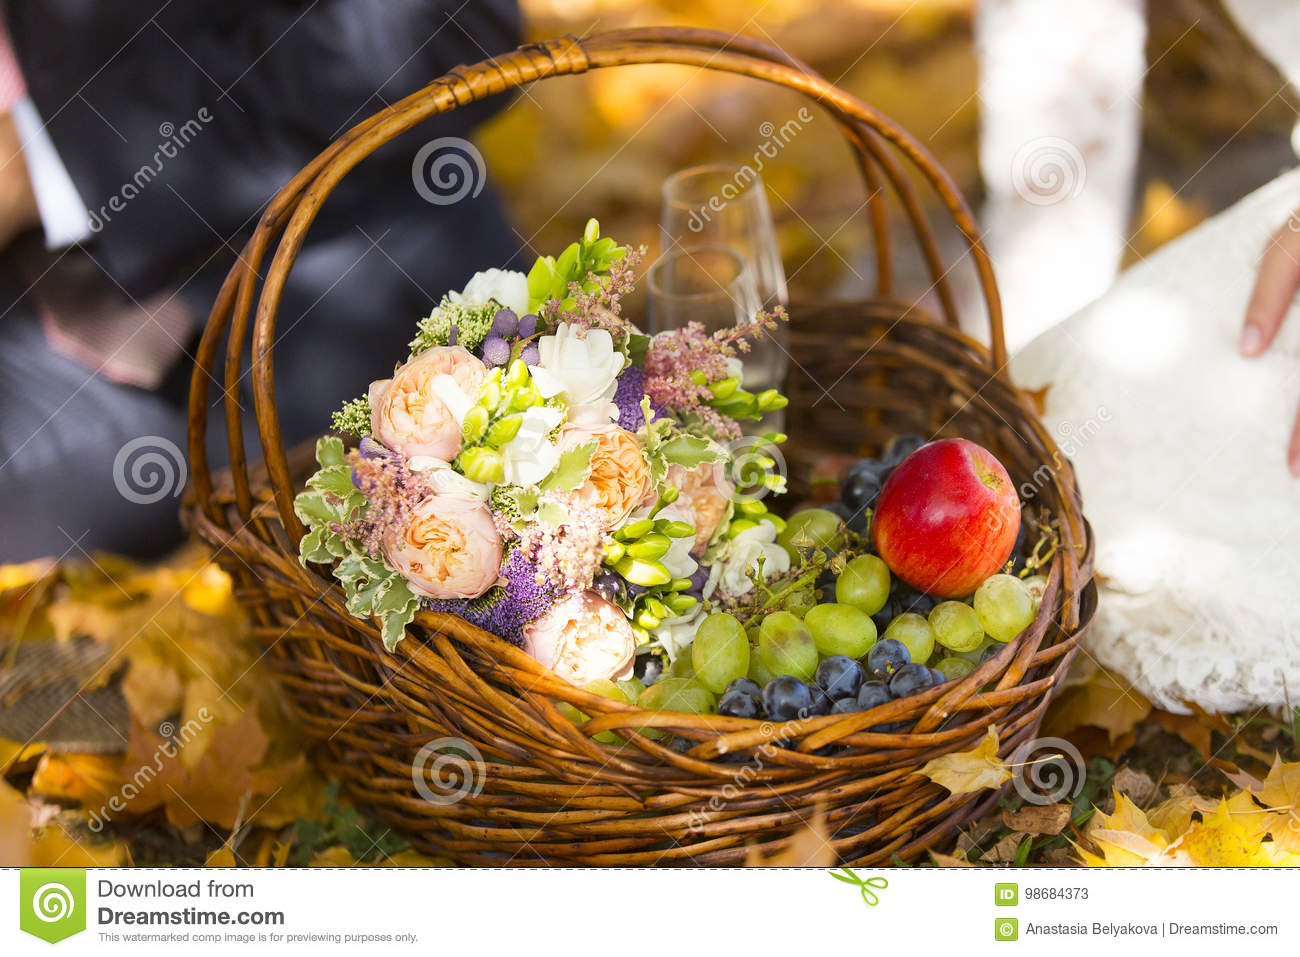 Wicker Picnic Basket Of Fruits Berries And Wedding Bouquet Of Flowers Stock Image Image Of Wedding Pink 98684373